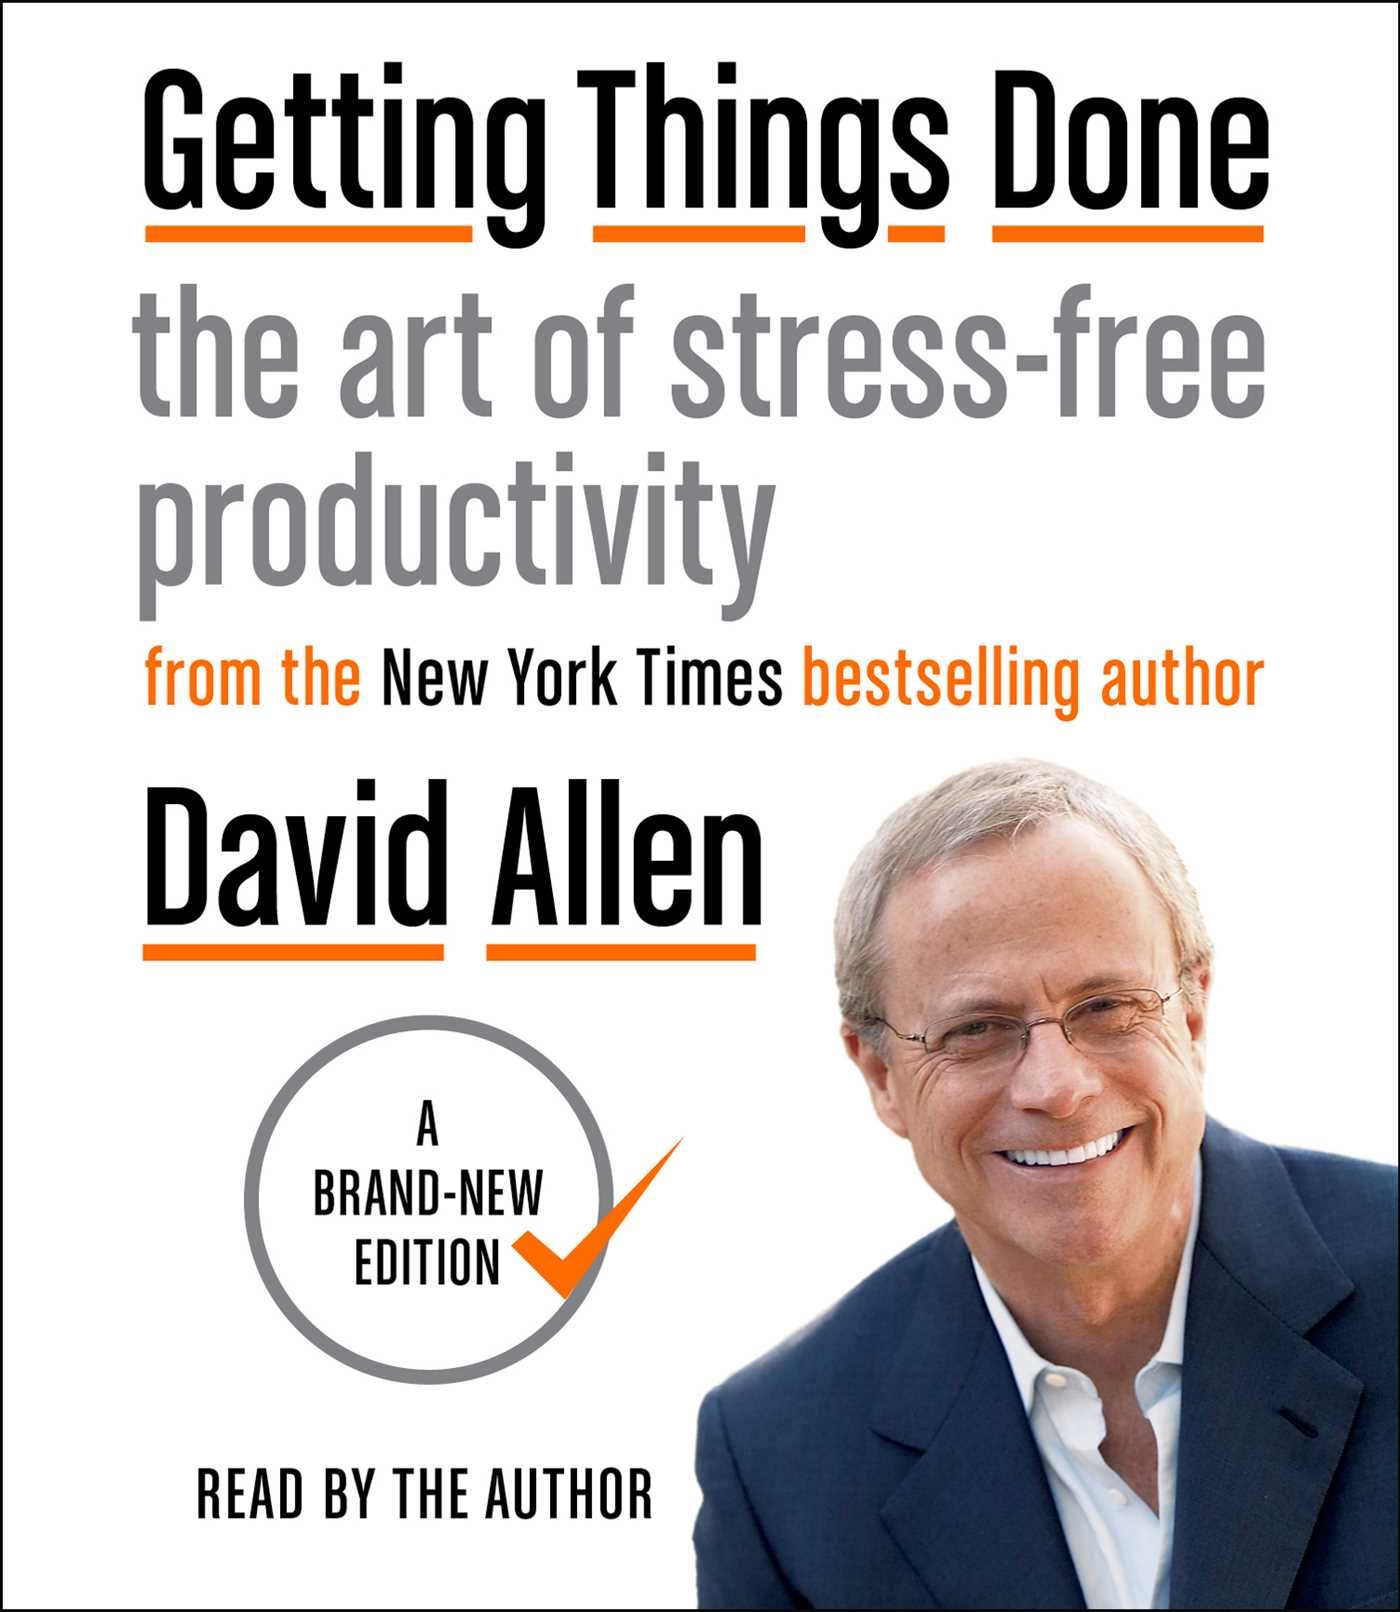 Getting things done – David Allen